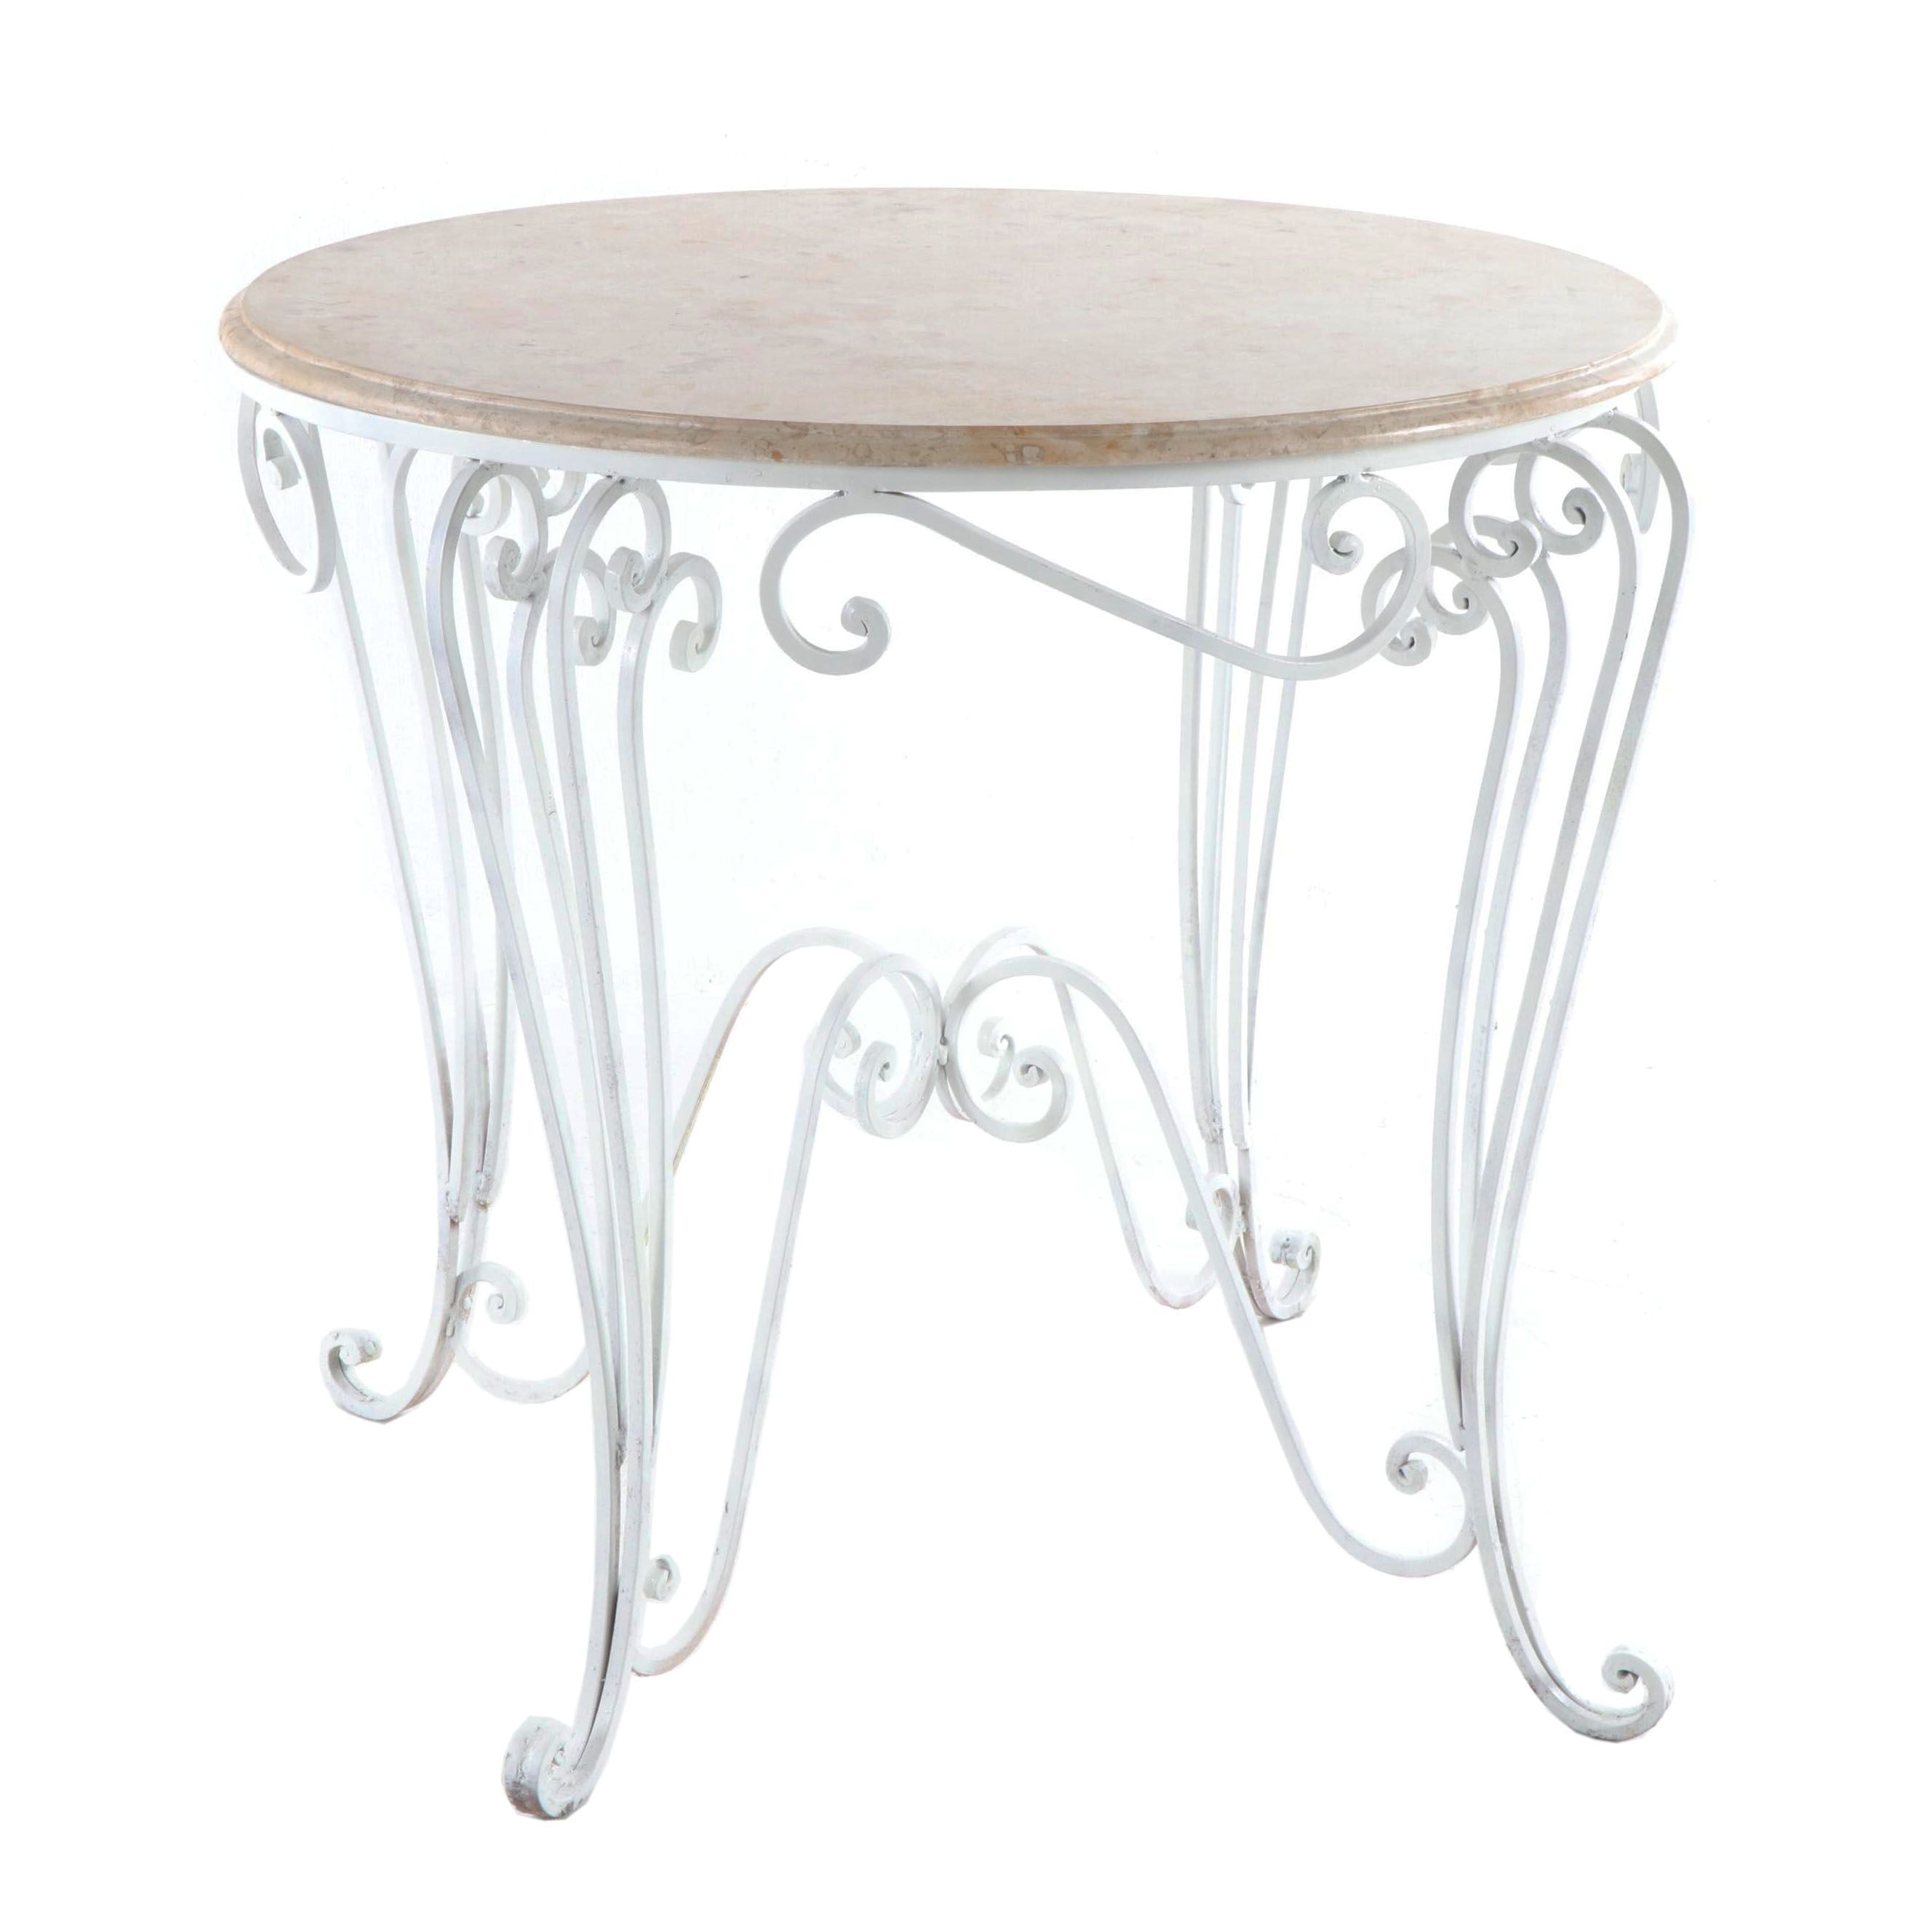 Stone and Wrought Iron Bistro Table